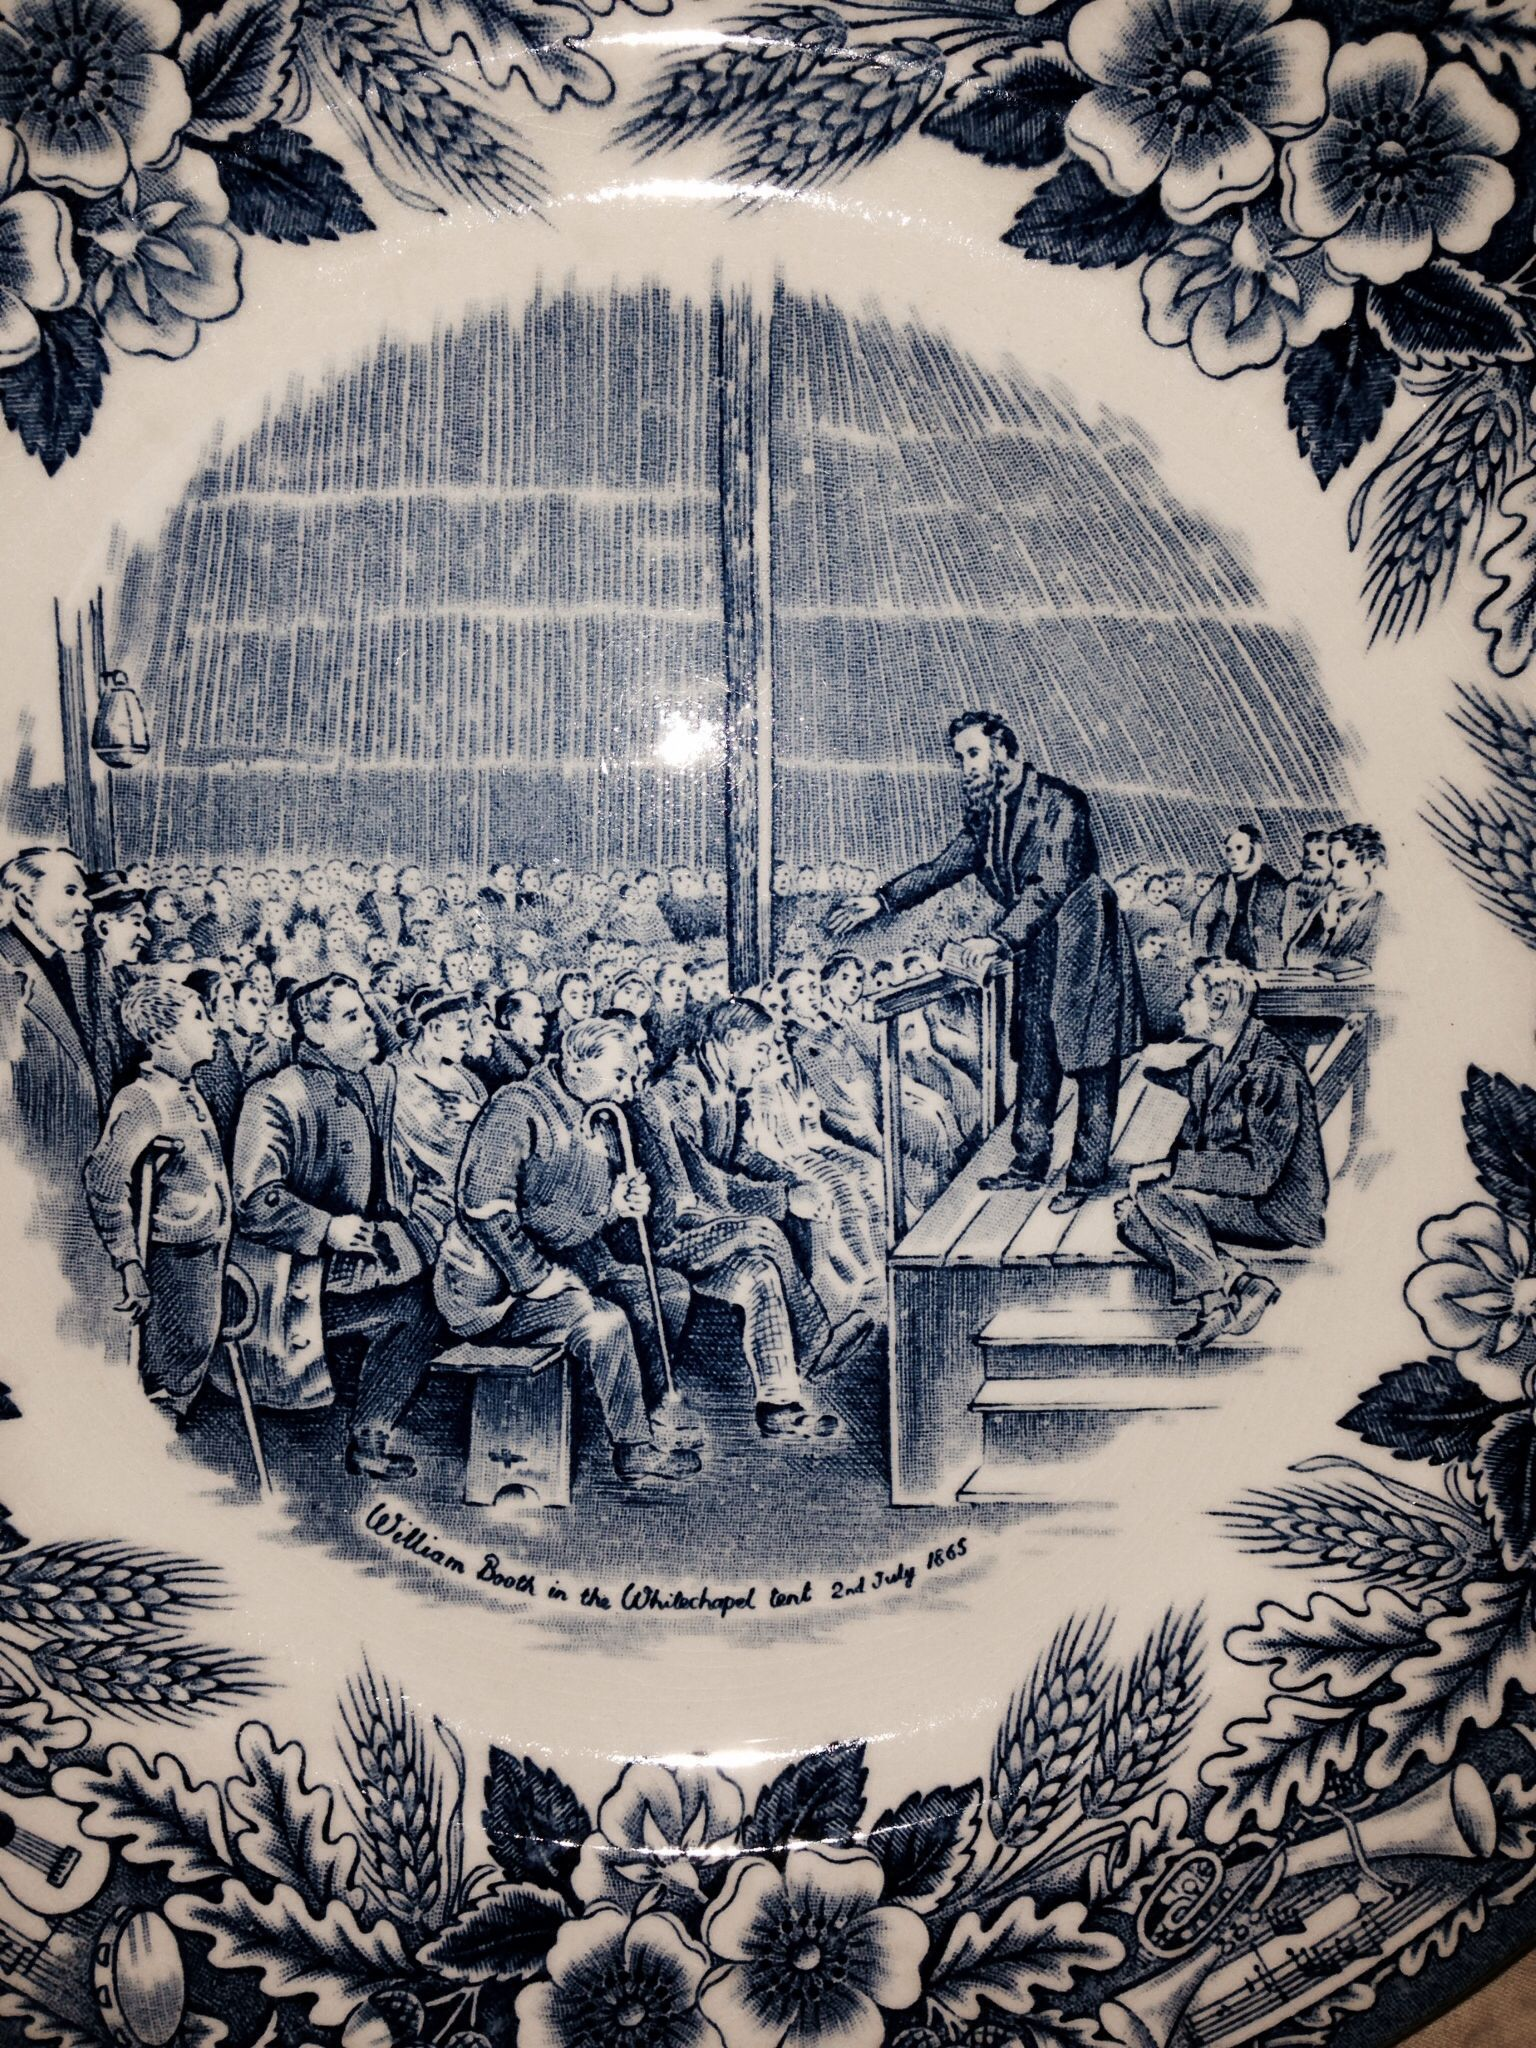 Salvation Army dishes.  Plate depicts founder William Booth preaching to the masses in the 1800's.